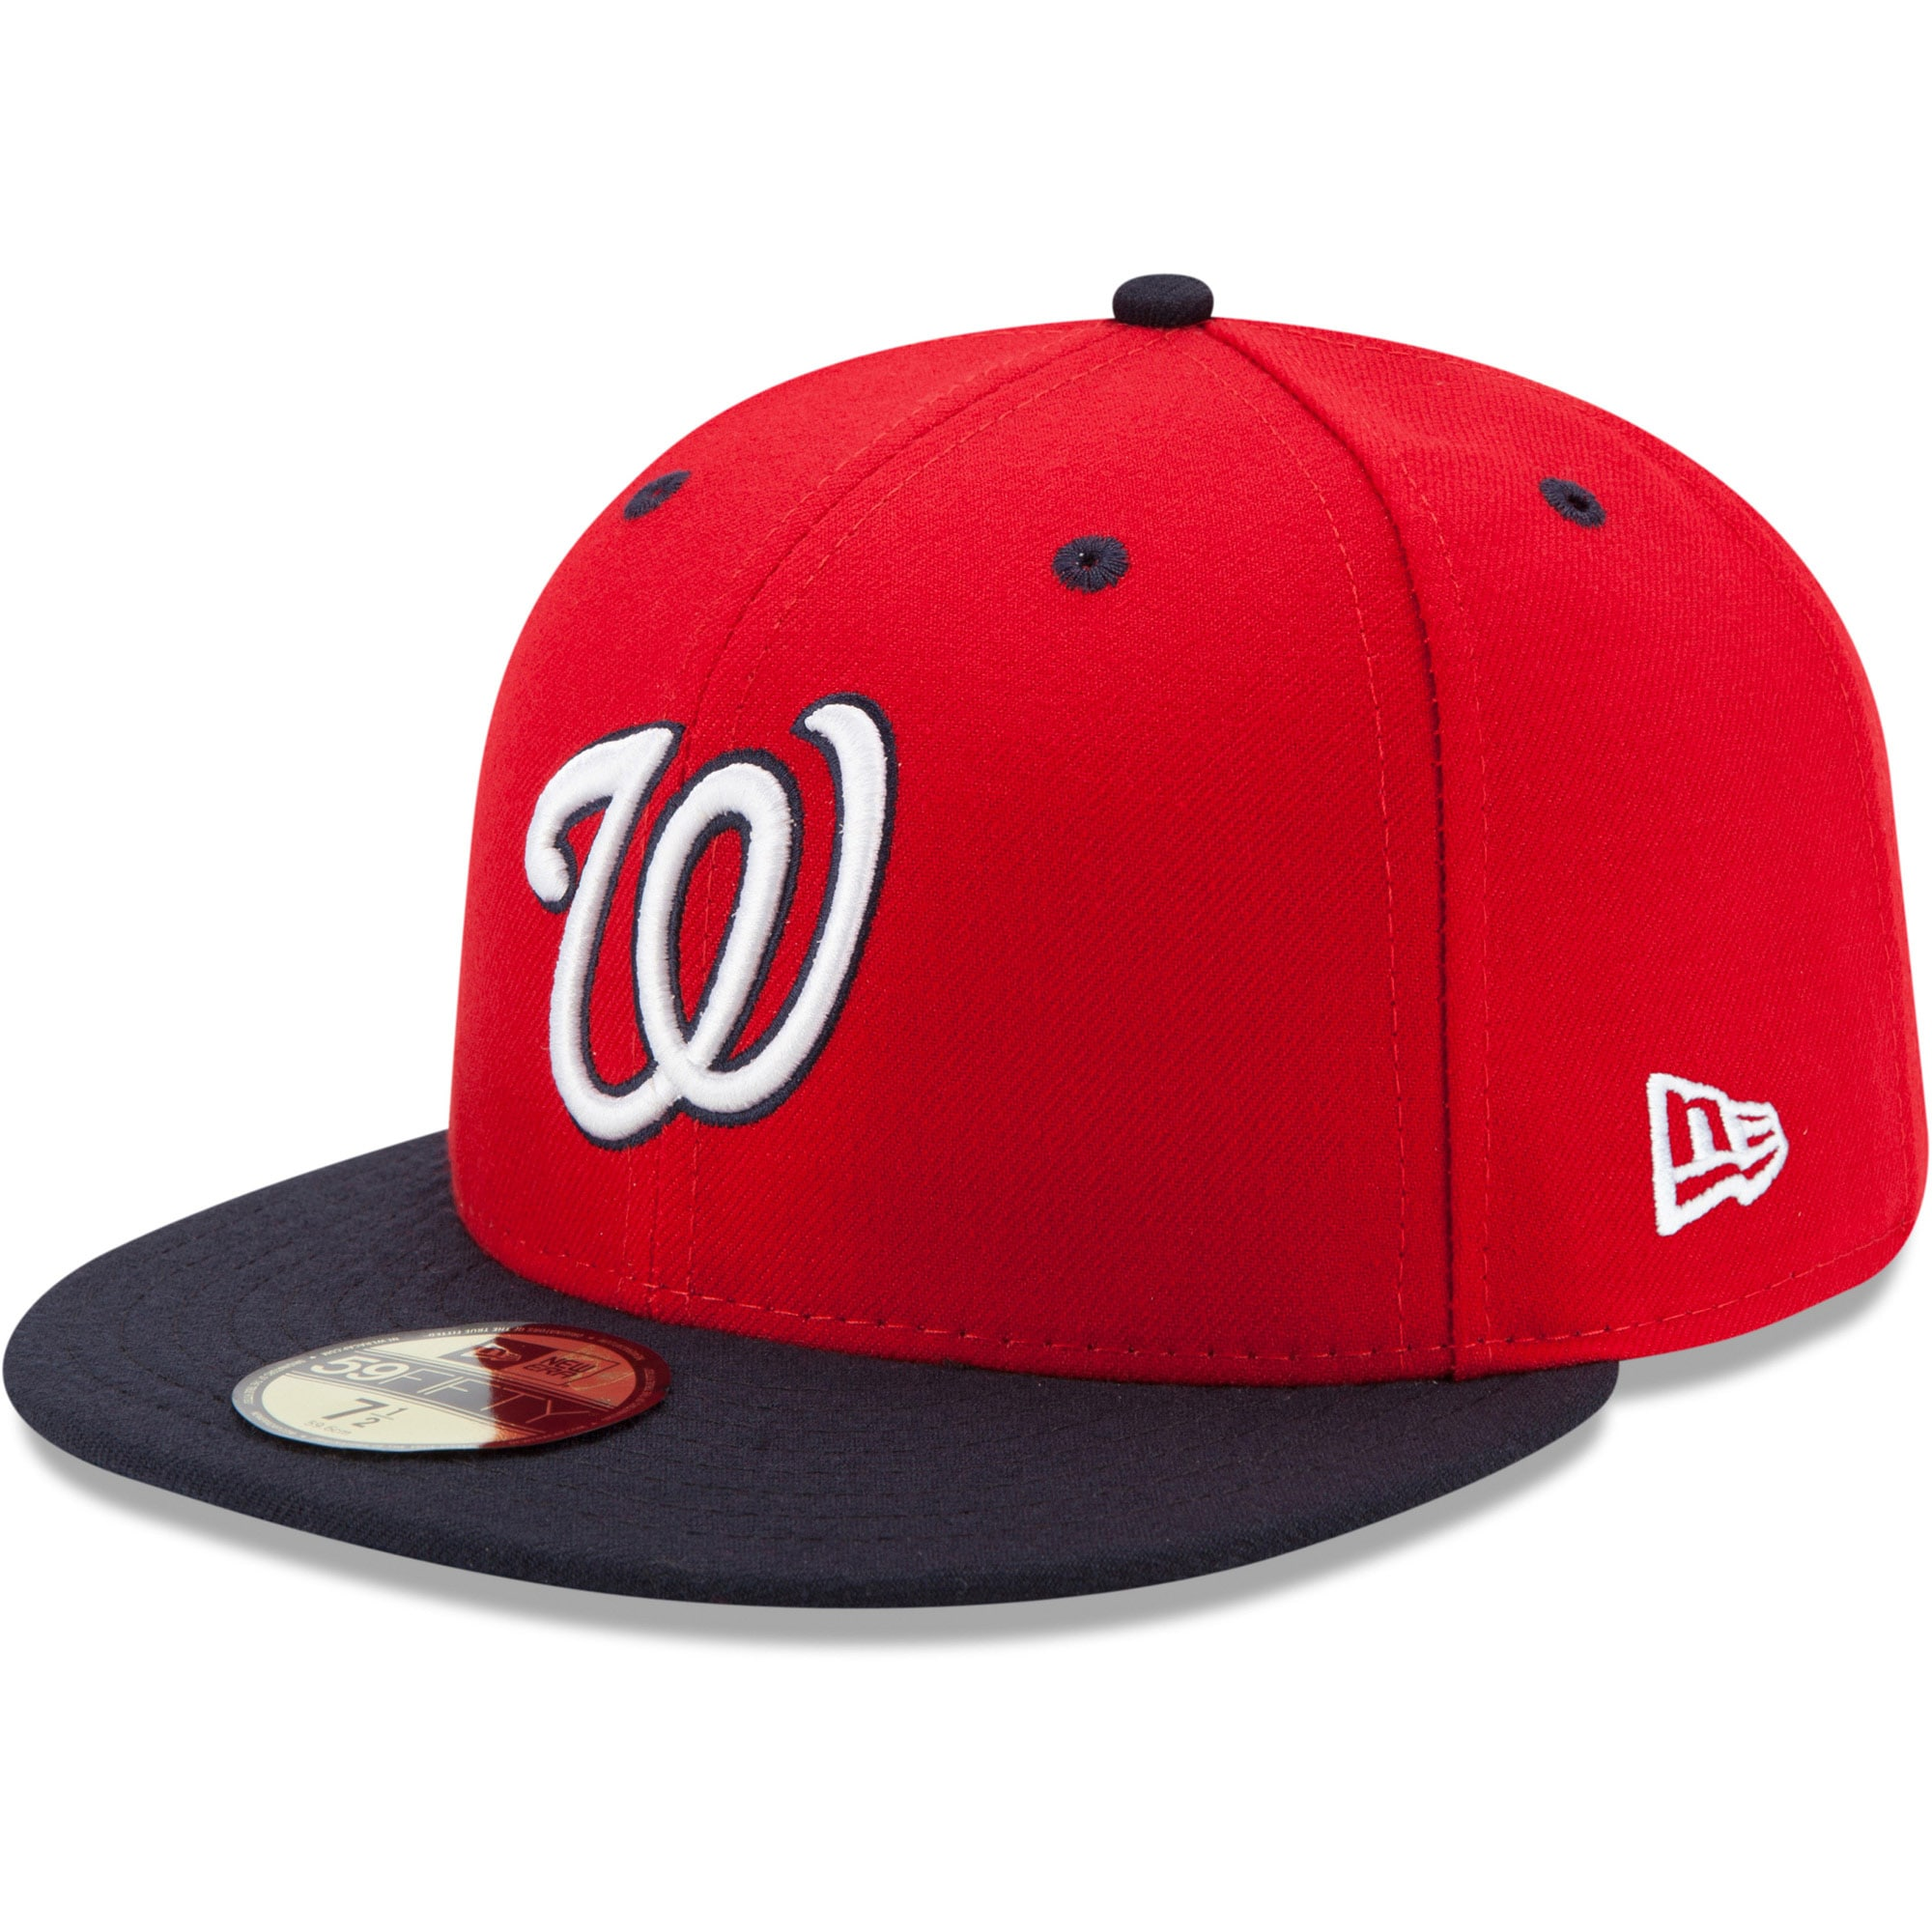 Washington Nationals New Era Alternate 2 Authentic Collection On-Field 59FIFTY Fitted Hat - Red/Navy